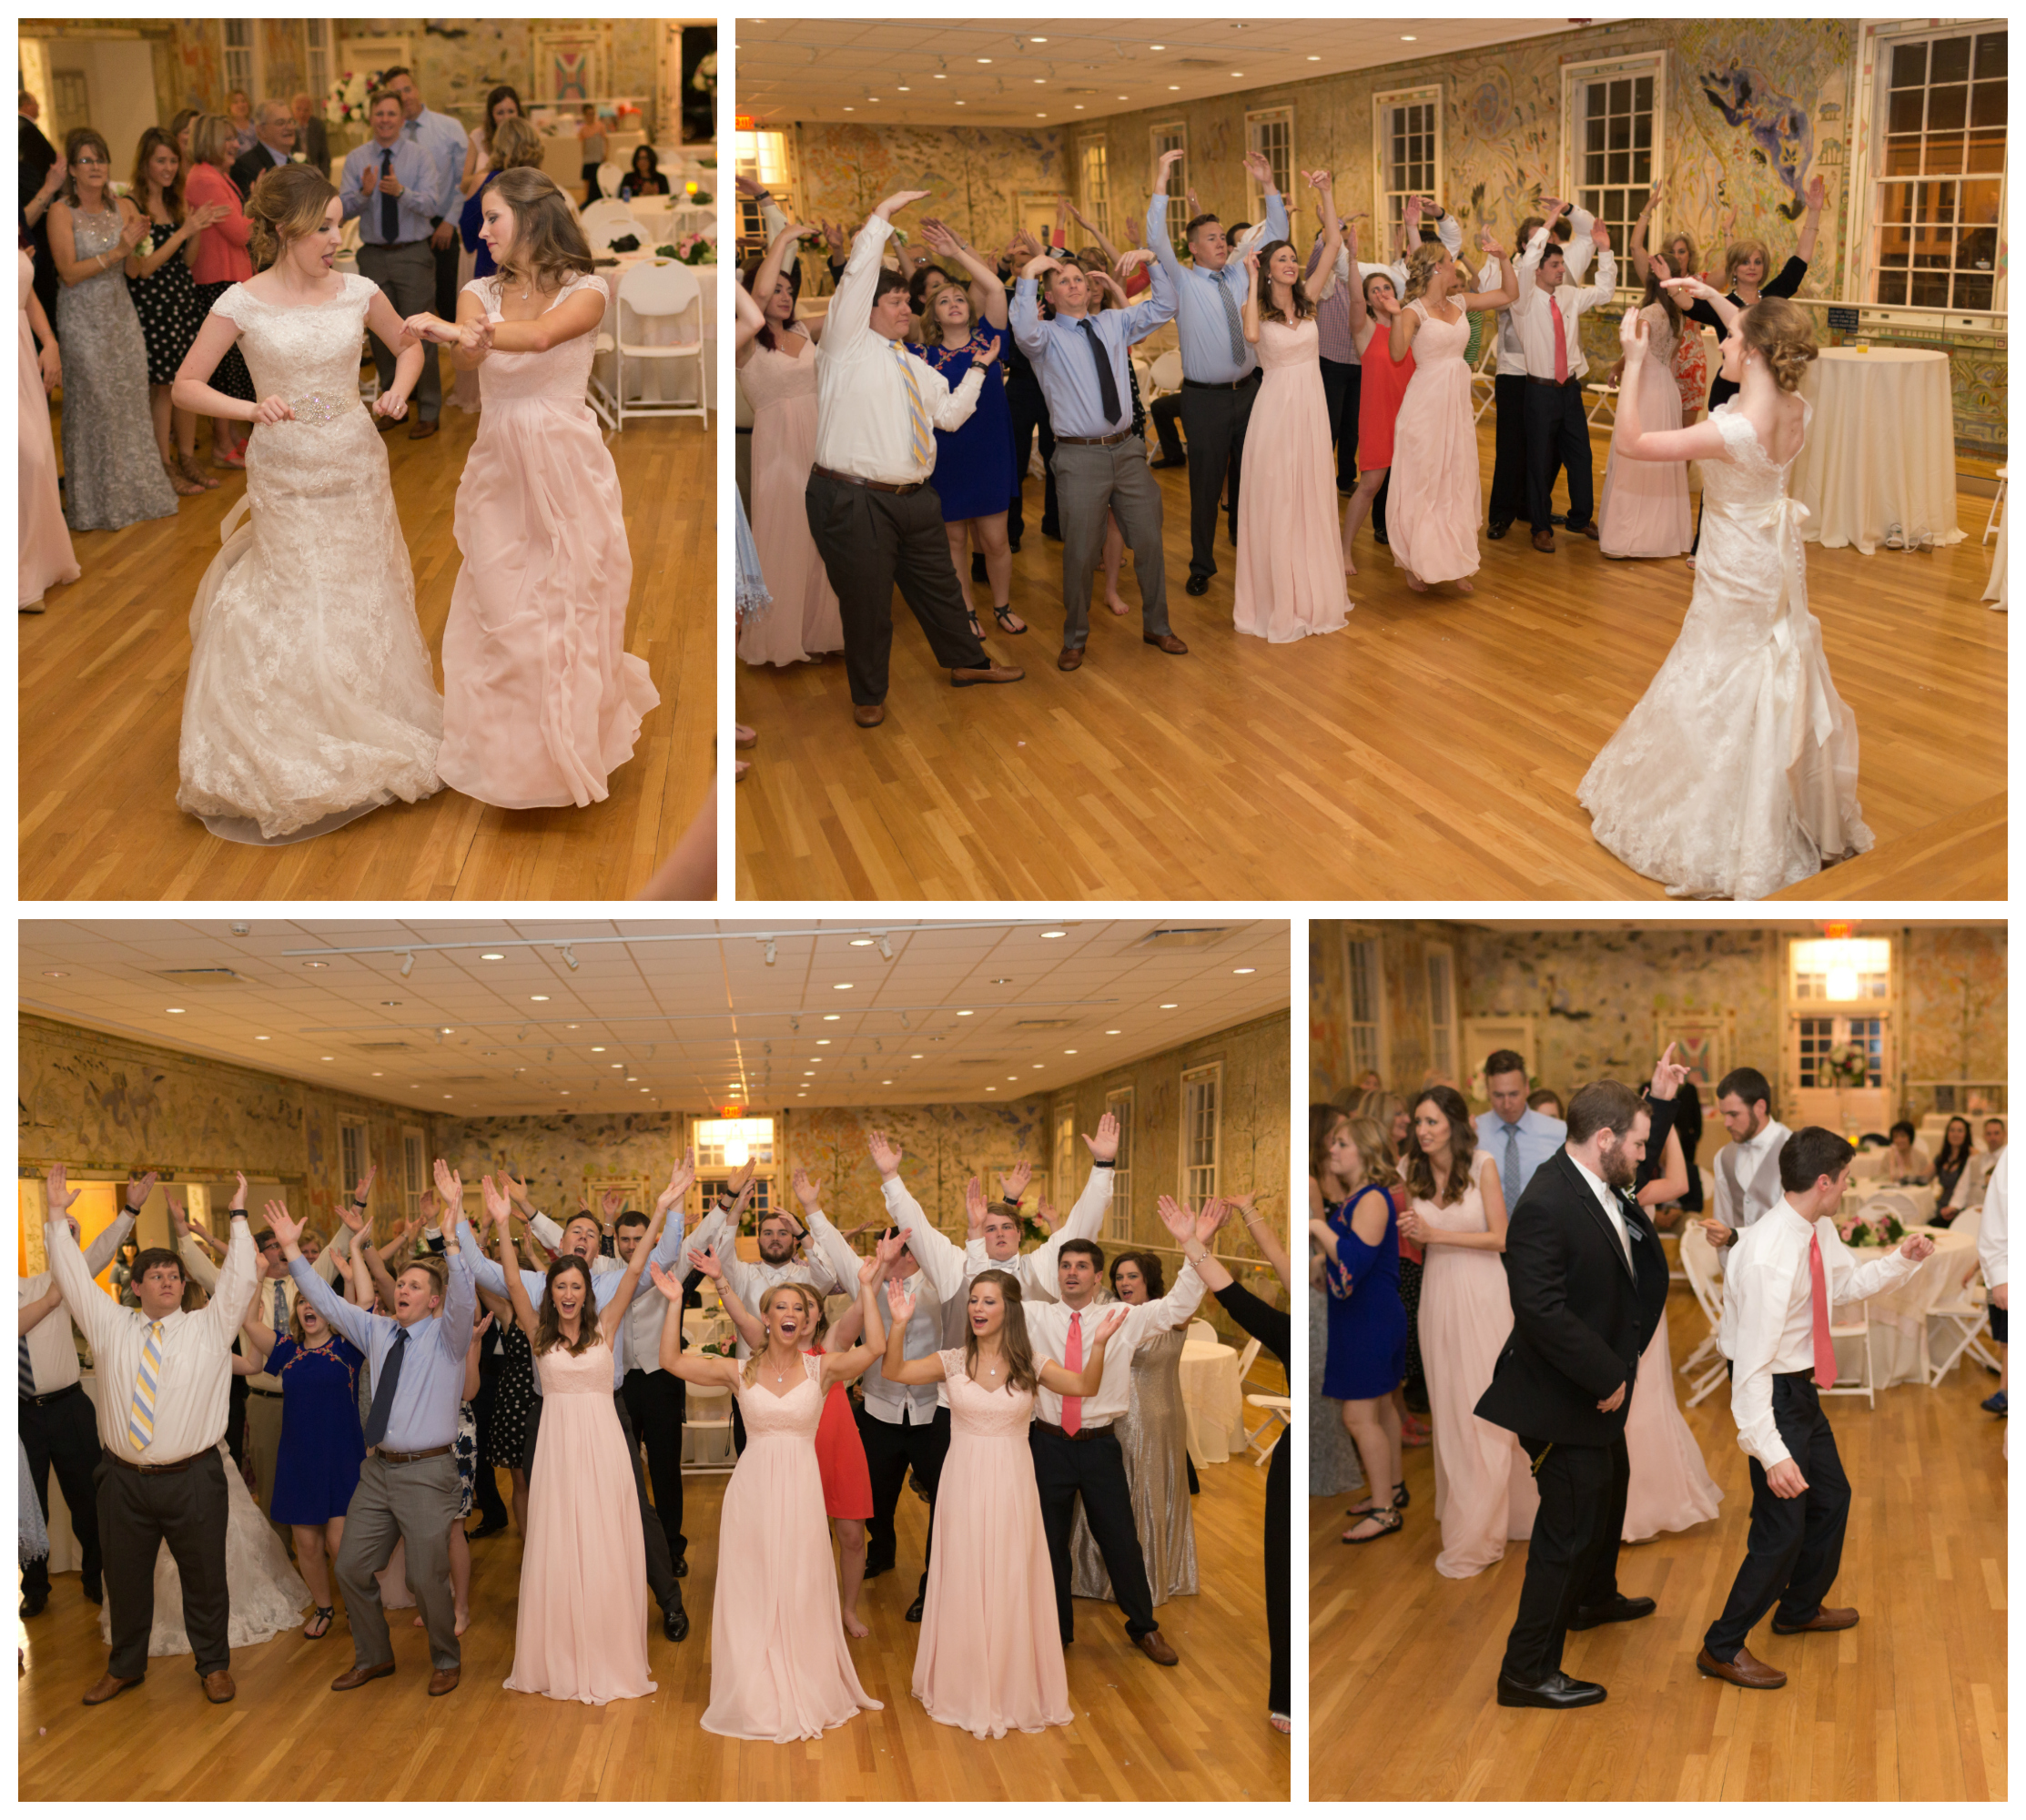 YMCA dance at wedding reception (Uninvented Colors Photography)